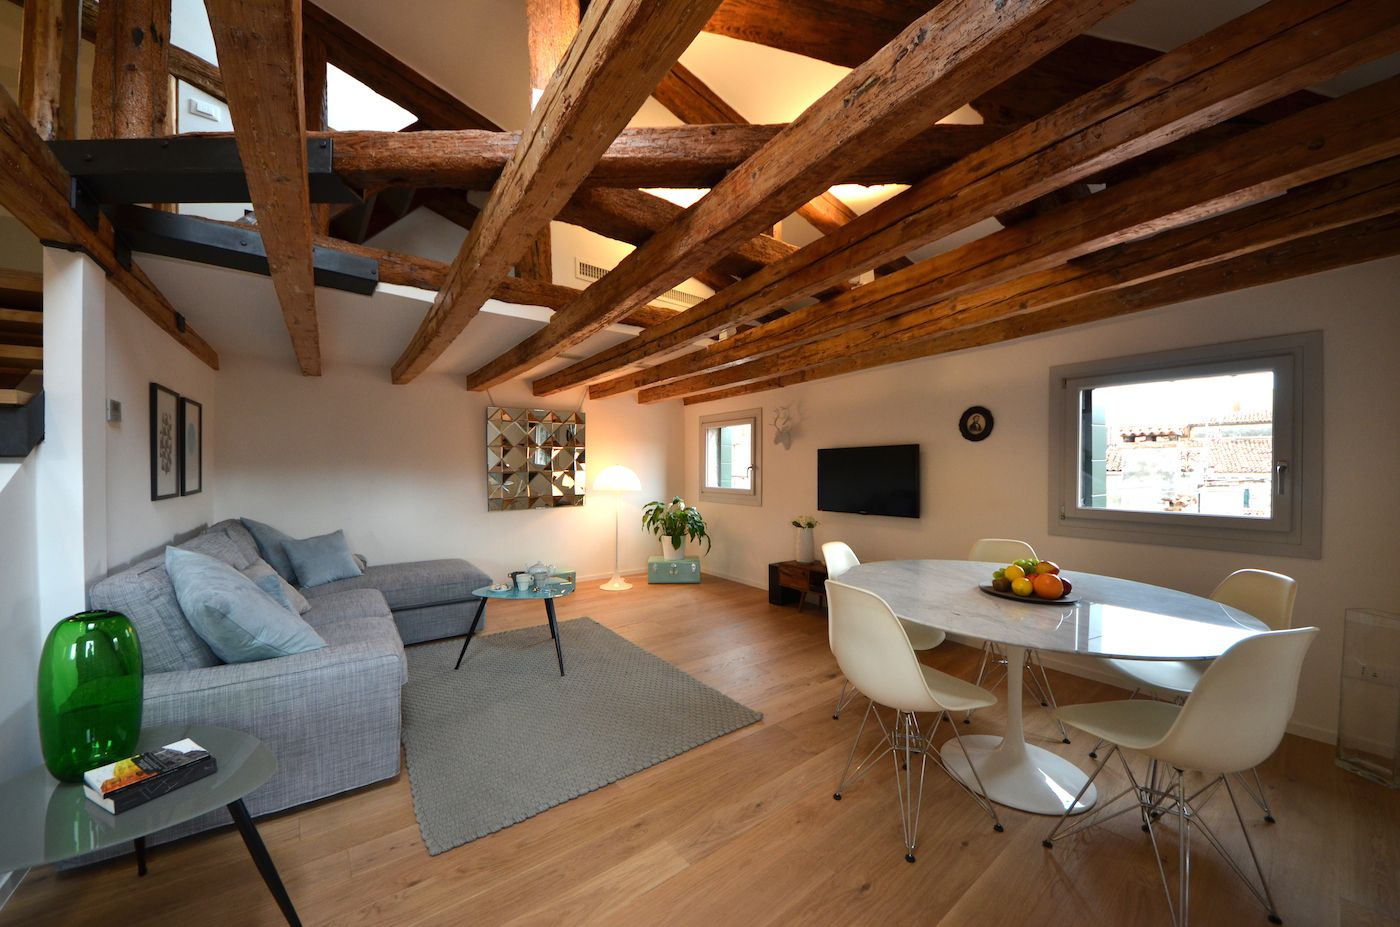 natural parquet flooring and antique wooden beamed ceiling confer warmth to the ambience